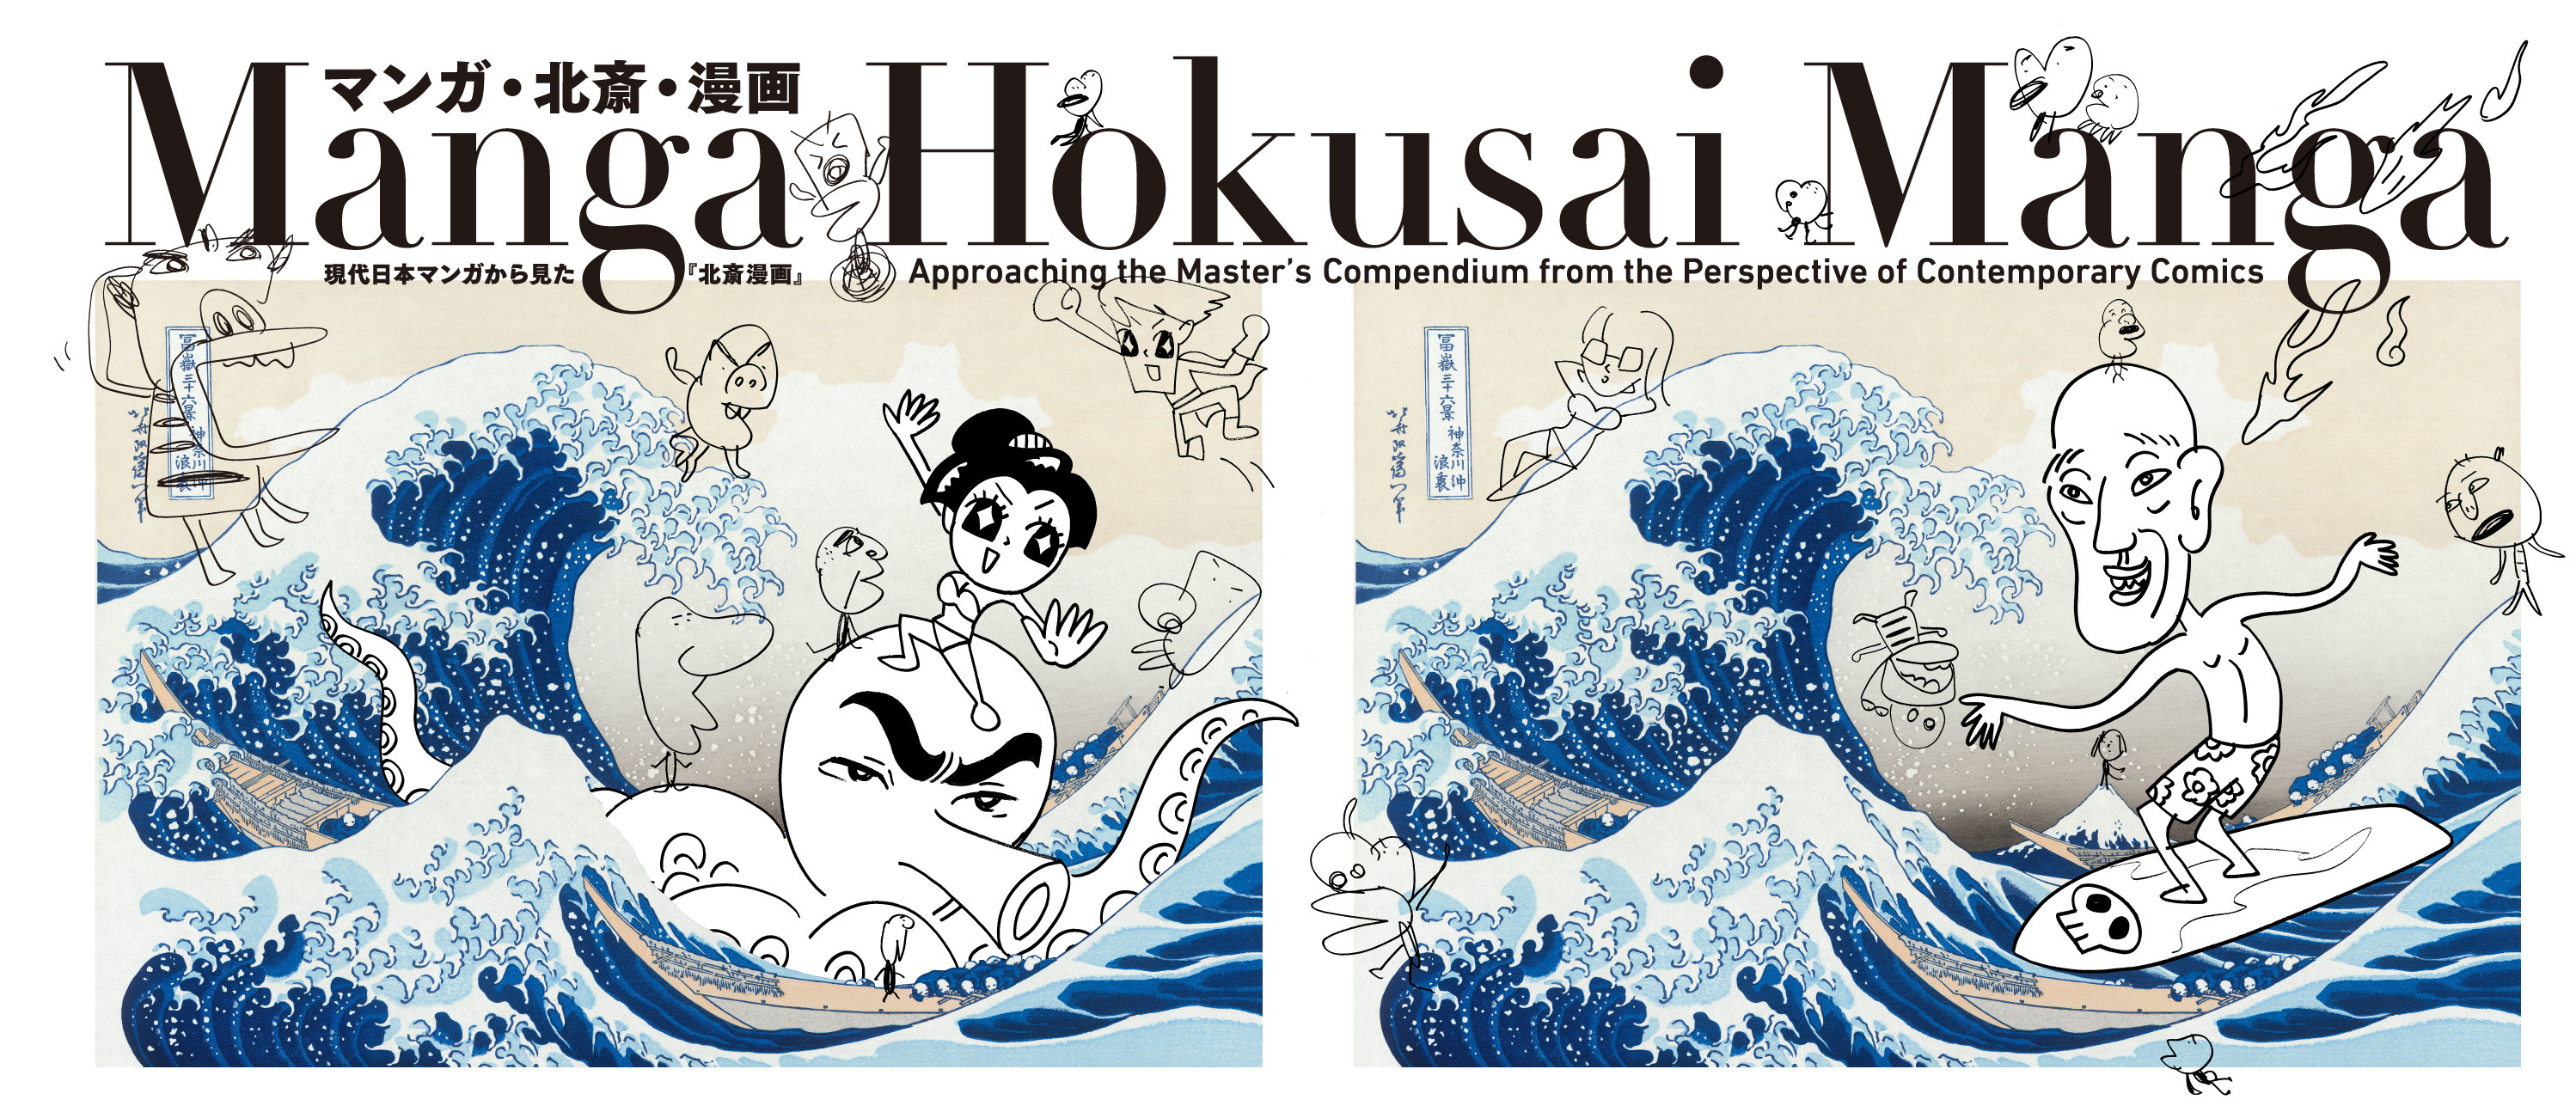 "Manga Hokusai Manga Public · Hosted by Ateneo Art Gallery and The Japan Foundation, Manila clock Saturday at 11 AM - 1 PM 2 days from now · 26–33° Partly Cloudy pin Show Map Ateneo Art Gallery Second floor, Rizal Library Special Collections, Ateneo de Manila University, 1108 Quezon City, Philippines About Discussion 205 Going · 1.2K InterestedSee All 8 Jam is going Share Share In Messenger To: Choose friends Add a message... Details Manga Hokusai Manga: Approaching the Master's Compendium from the Perspective of Contemporary Comics 17 June to 28 July 2017 Opening Reception: 17th of June, 11:00 am Ateneo Art Gallery, The Japan Foundation, Manila and Embassy of Japan in the Philippines are pleased to present the international travelling exhibition Manga Hokusai Manga: Approaching the Master's Compendium from the Perspective of Contemporary Comics. Open from 17 June to 28 July 2017, the exhibition introduces the similarities and differences between modern Japanese manga, which now enjoys global popularity, and Katsushika Hokusai's manga. Katsushika Hokusai (1760-1849), best known for the woodblock print titled The Great Wave, called his collection of printed drawings ""manga."" Hokusai Manga contains an assortment of drawings varying in subject matter—from the humorous to the prosaic and instructional. This pictorial compendium is often associated with the origins of contemporary manga for its storytelling and visualization of movement. Over 200 years after its first volume was published, it continues to captivate people worldwide. Manga Hokusai Manga approaches Hokusai Manga from the perspective of contemporary Japanese comics. The exhibition begins with six images of Hokusai from 1970's manga, when Hokusai's personality and eventful life became a source of inspiration for manga artists, and ends with seven original works made by contemporary manga artists specifically for this exhibition. Responding to the formal aspects of Hokusai"